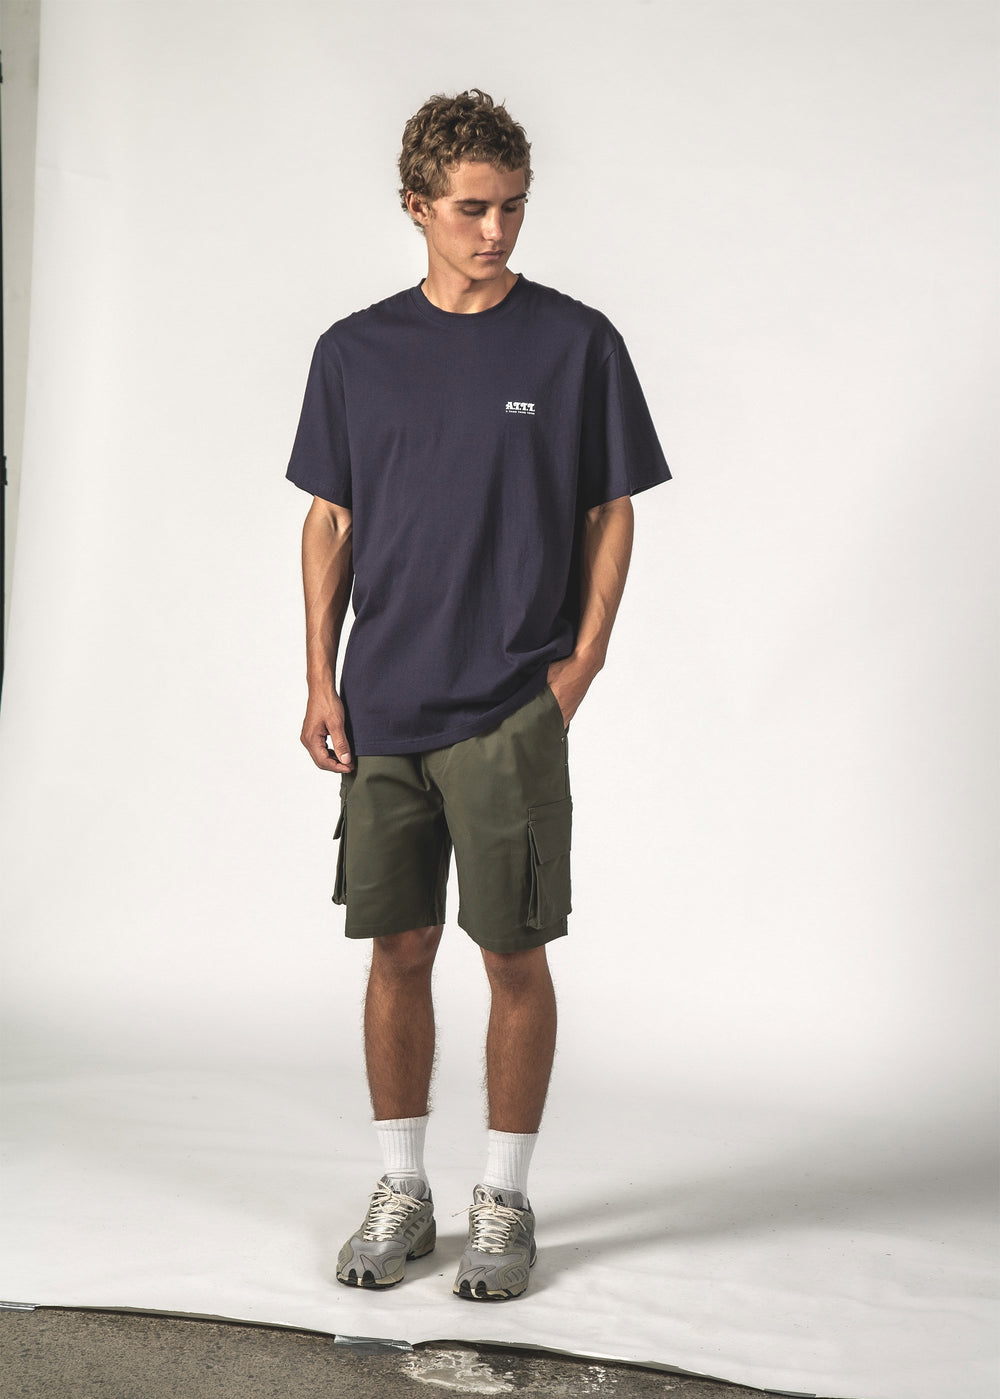 ATTT ARC SS TEE - Navy ATTT Arc